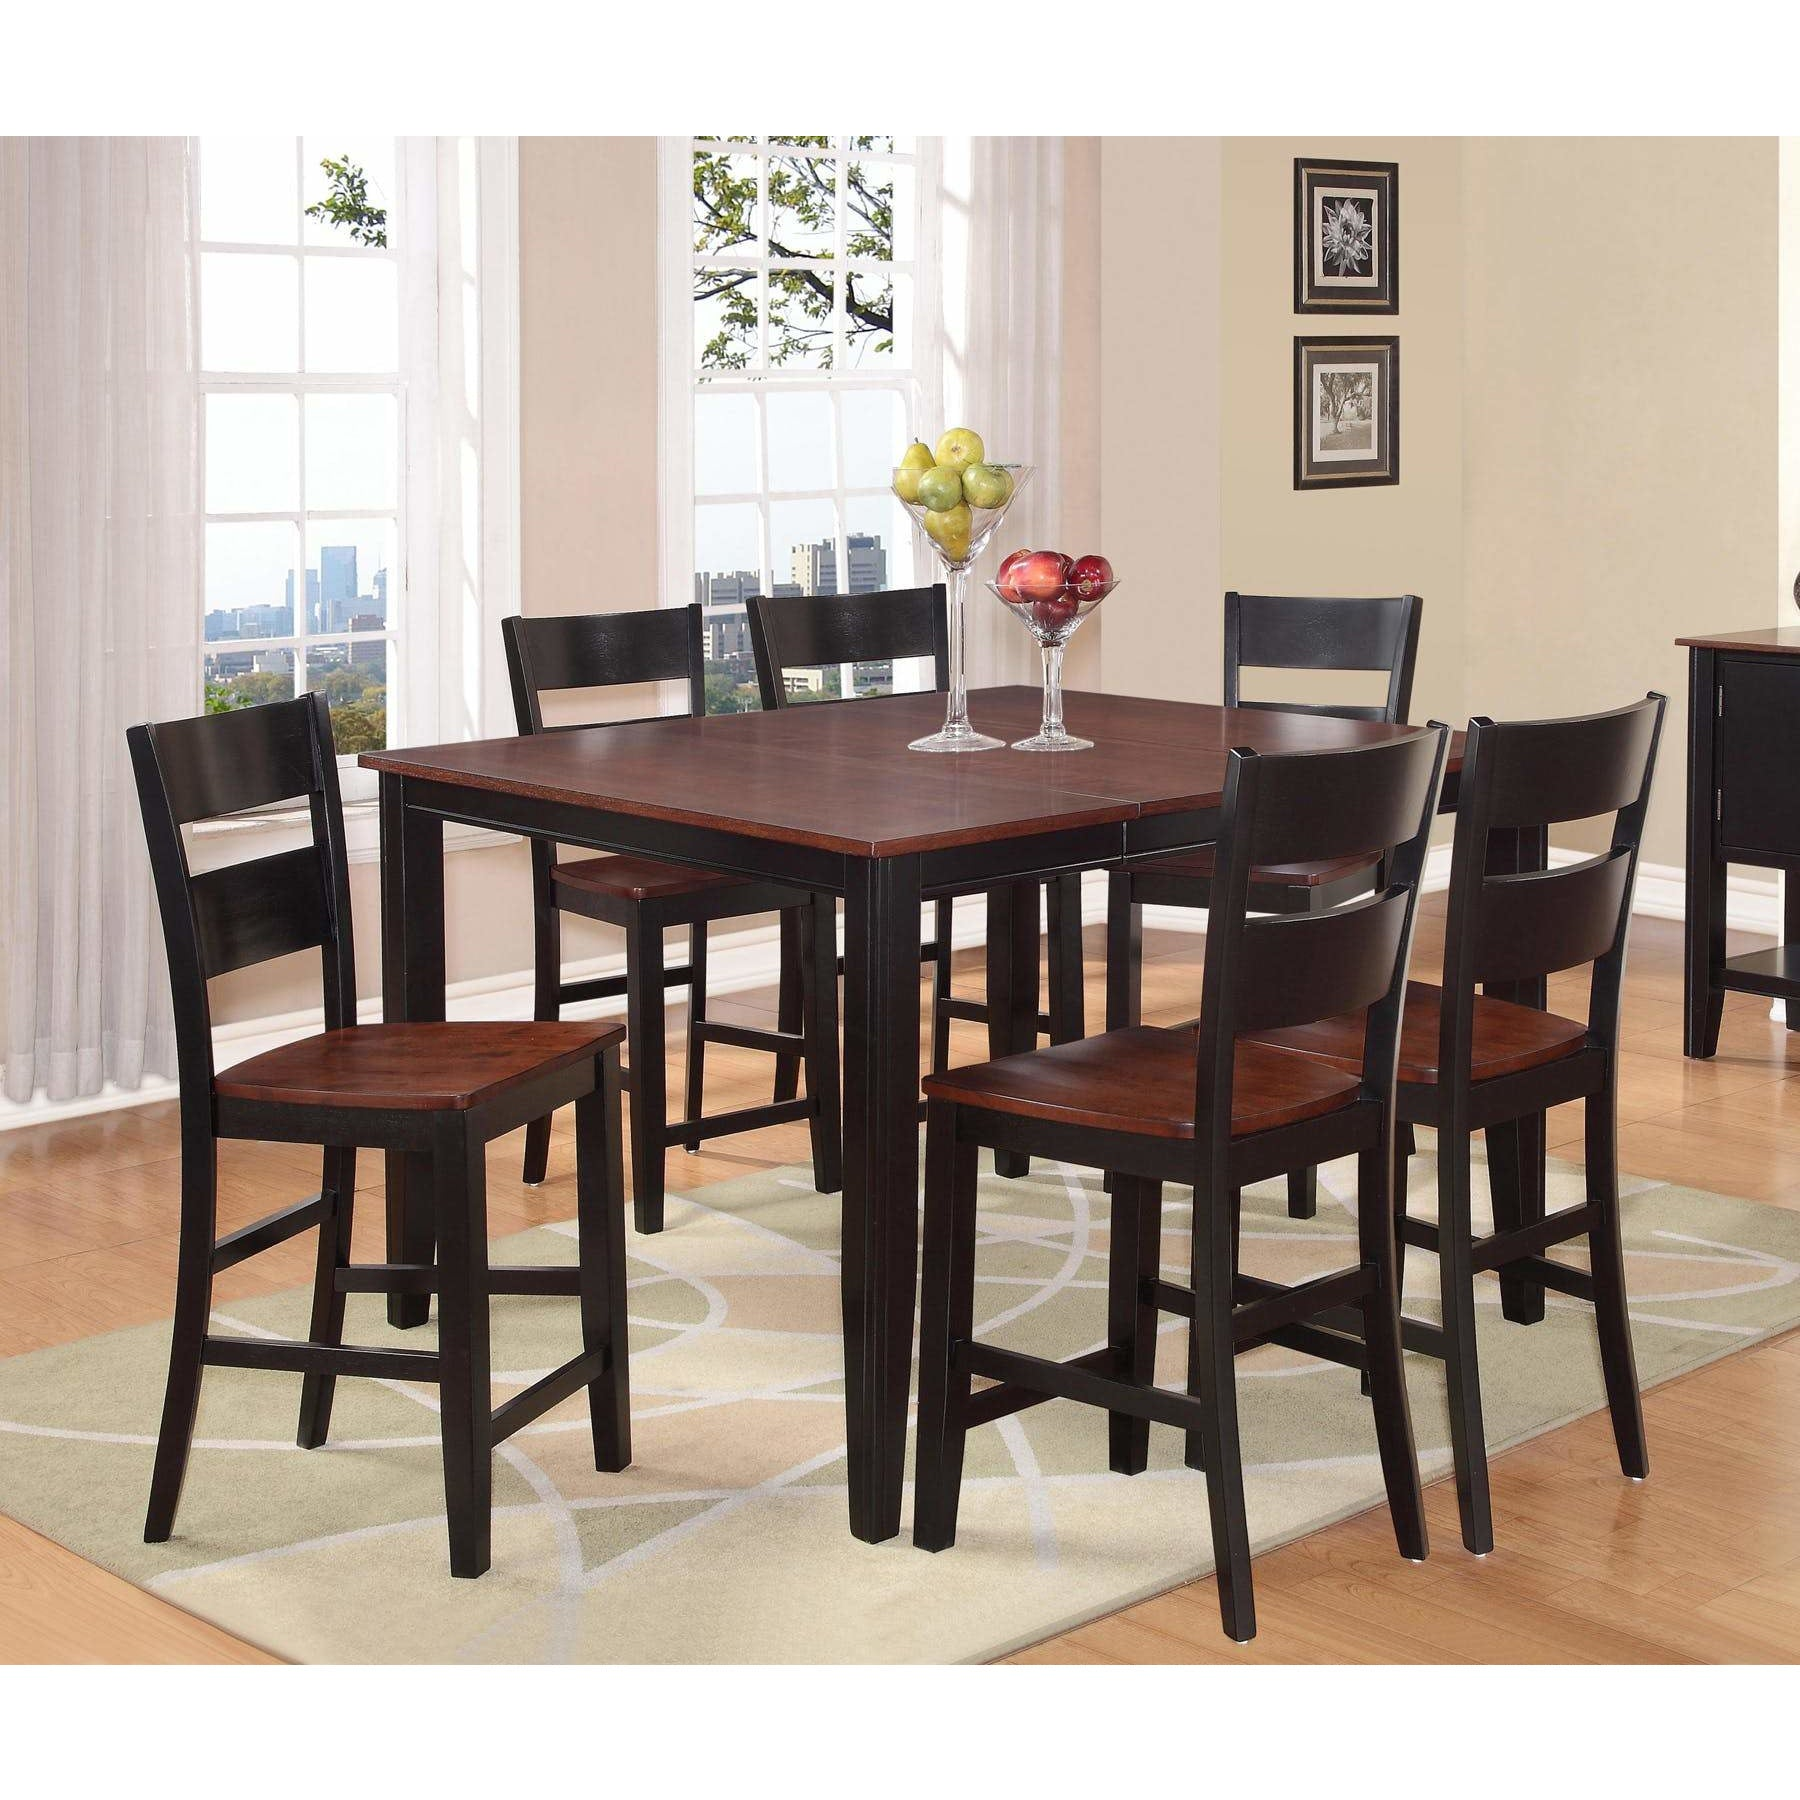 Findlay Pub Dining Set Furniture Fair Cincinnati Dayton